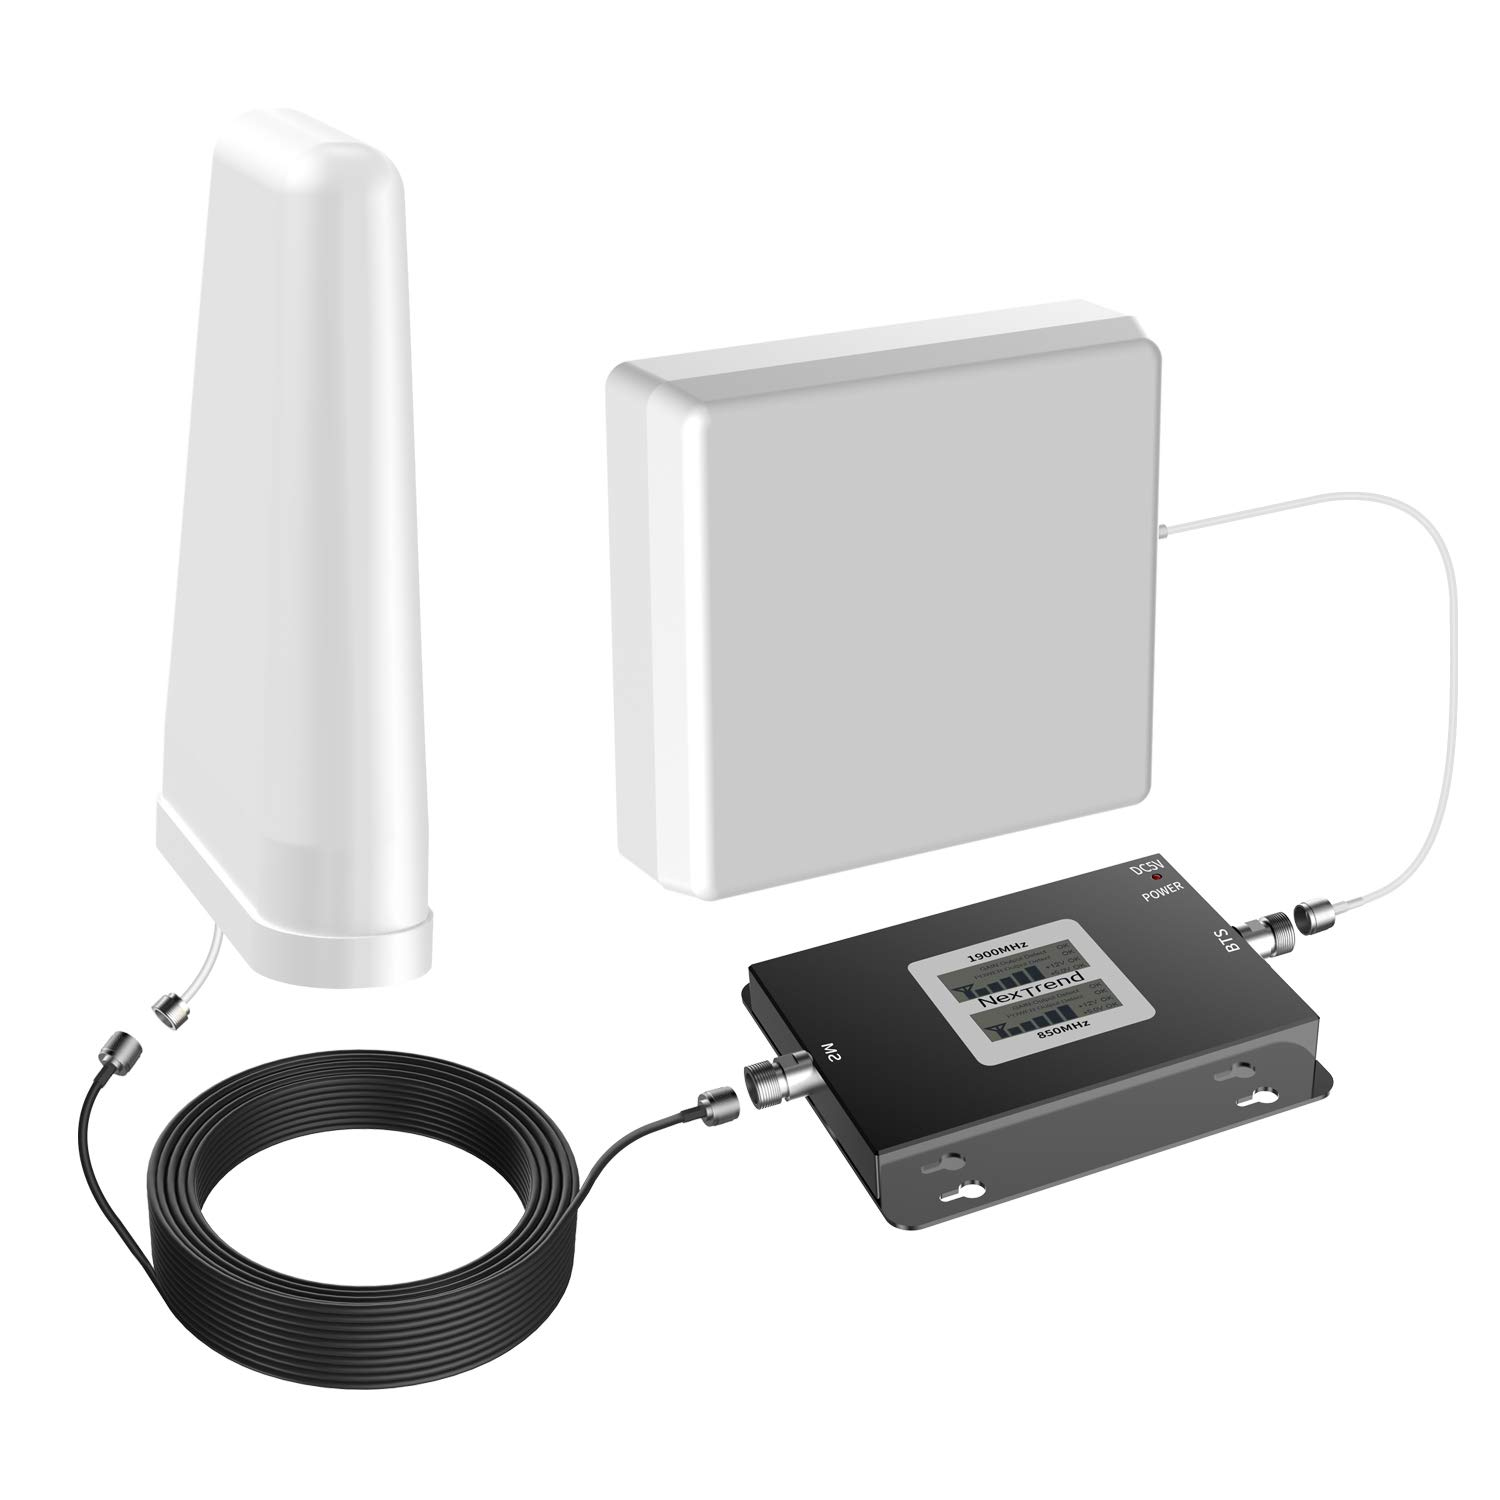 800-2500MHz indoor ceiling antenna use for phone signal booster repeater  SL